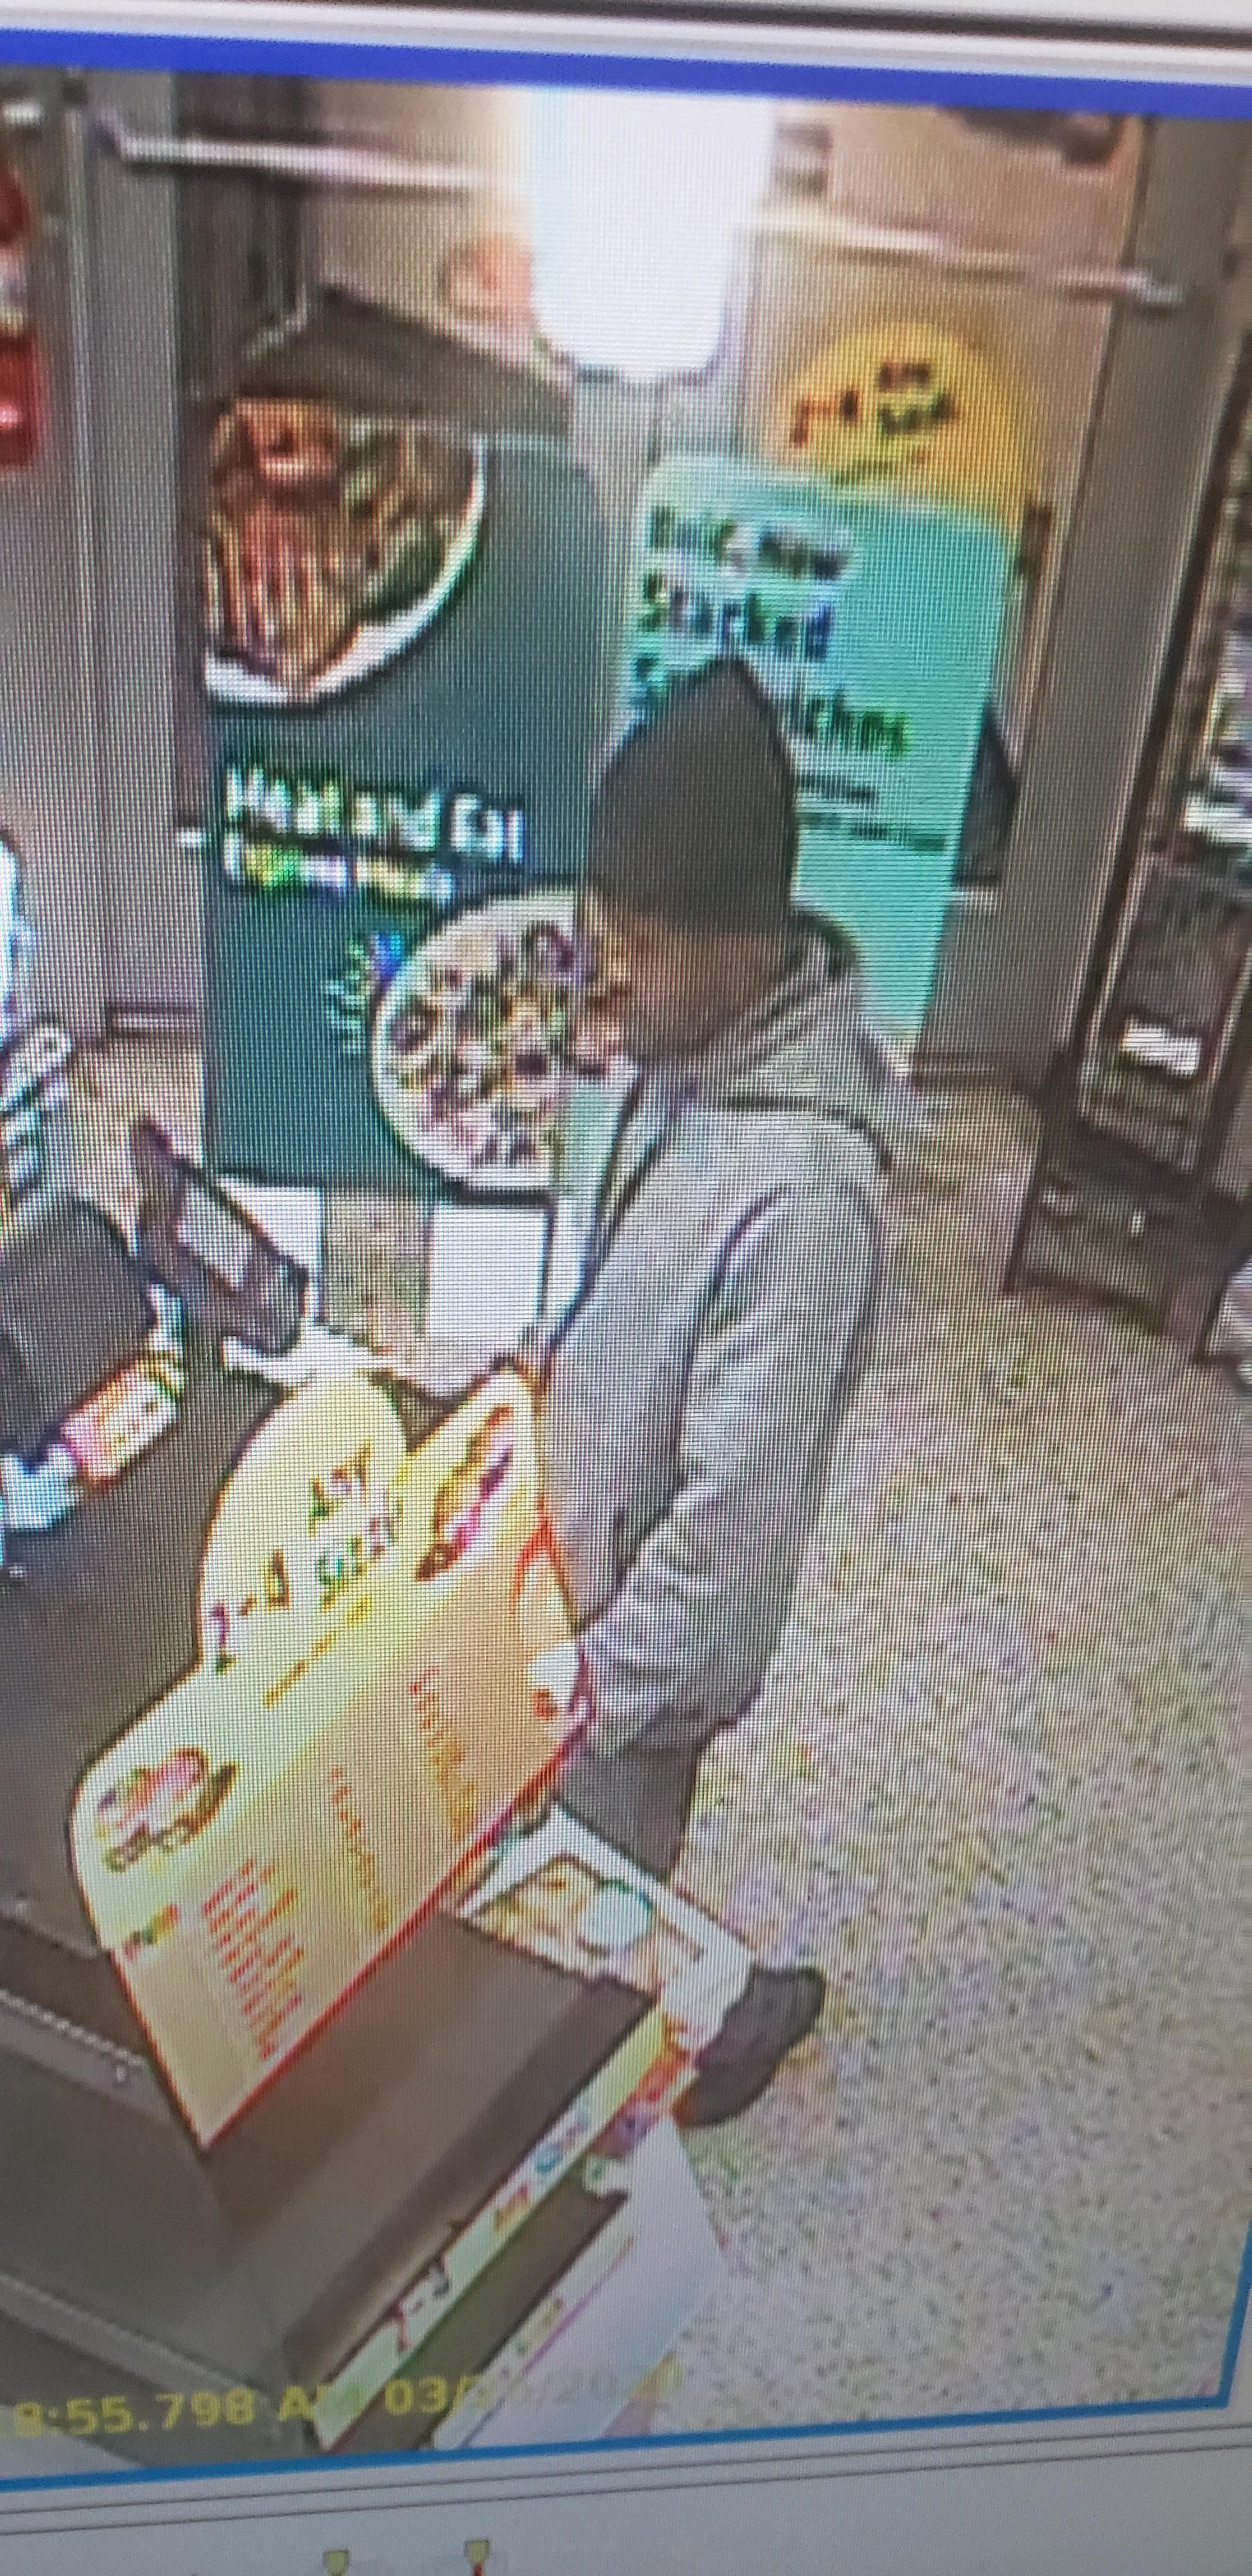 Suspect in 3-26-2020 Wawa Robbery